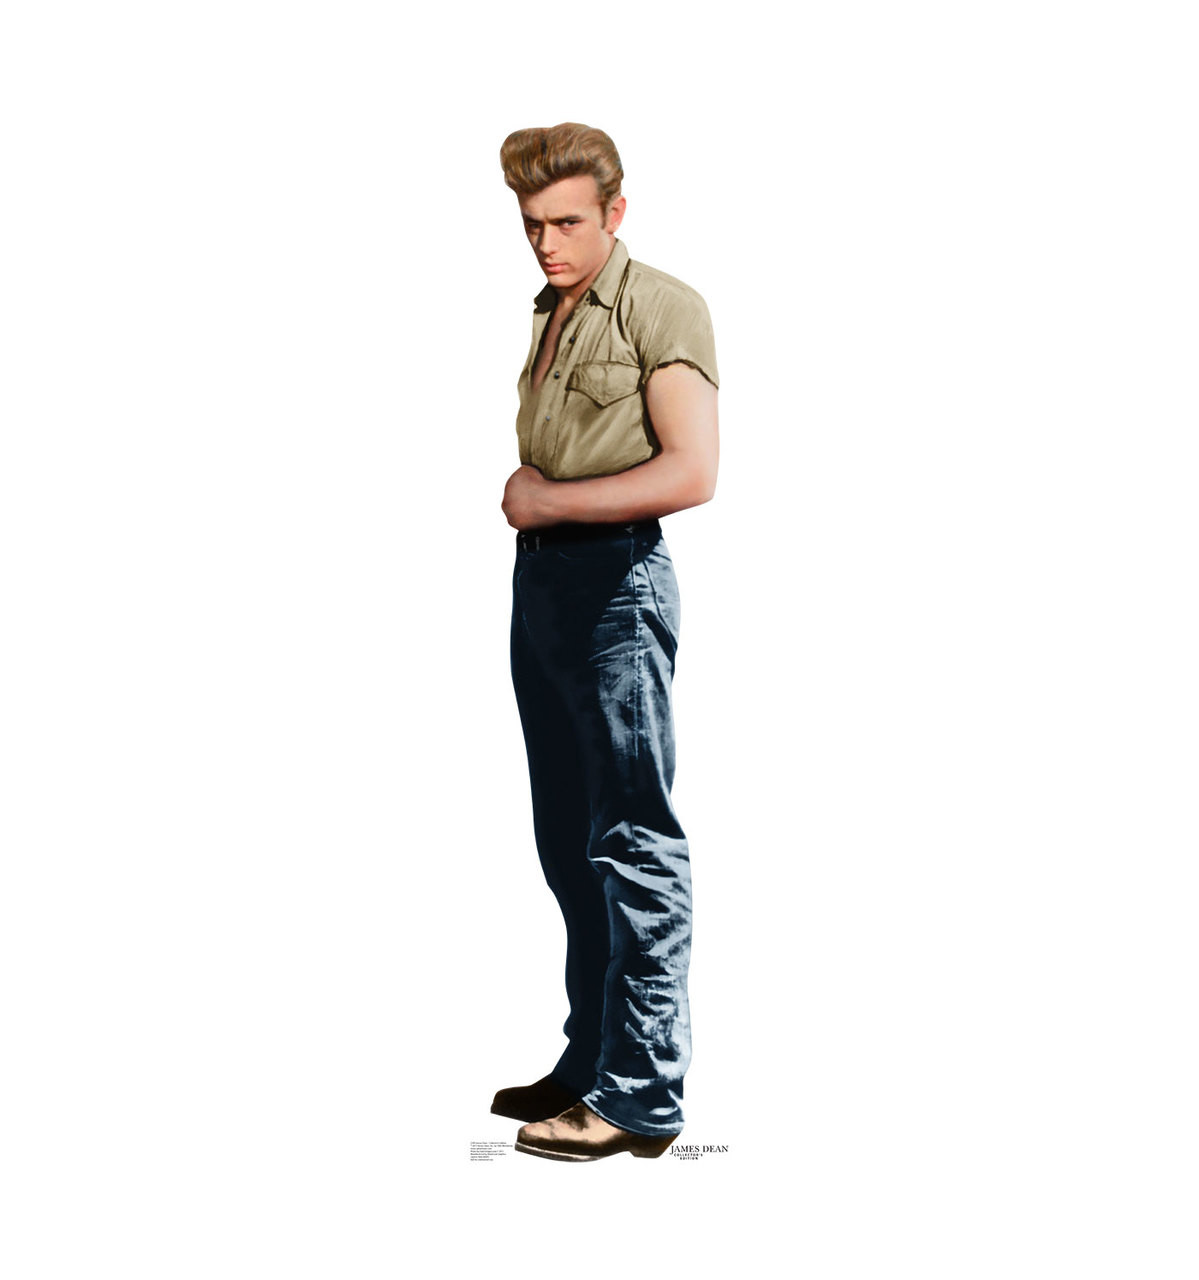 James Dean - Collector's Edition - Foamcore Cutout